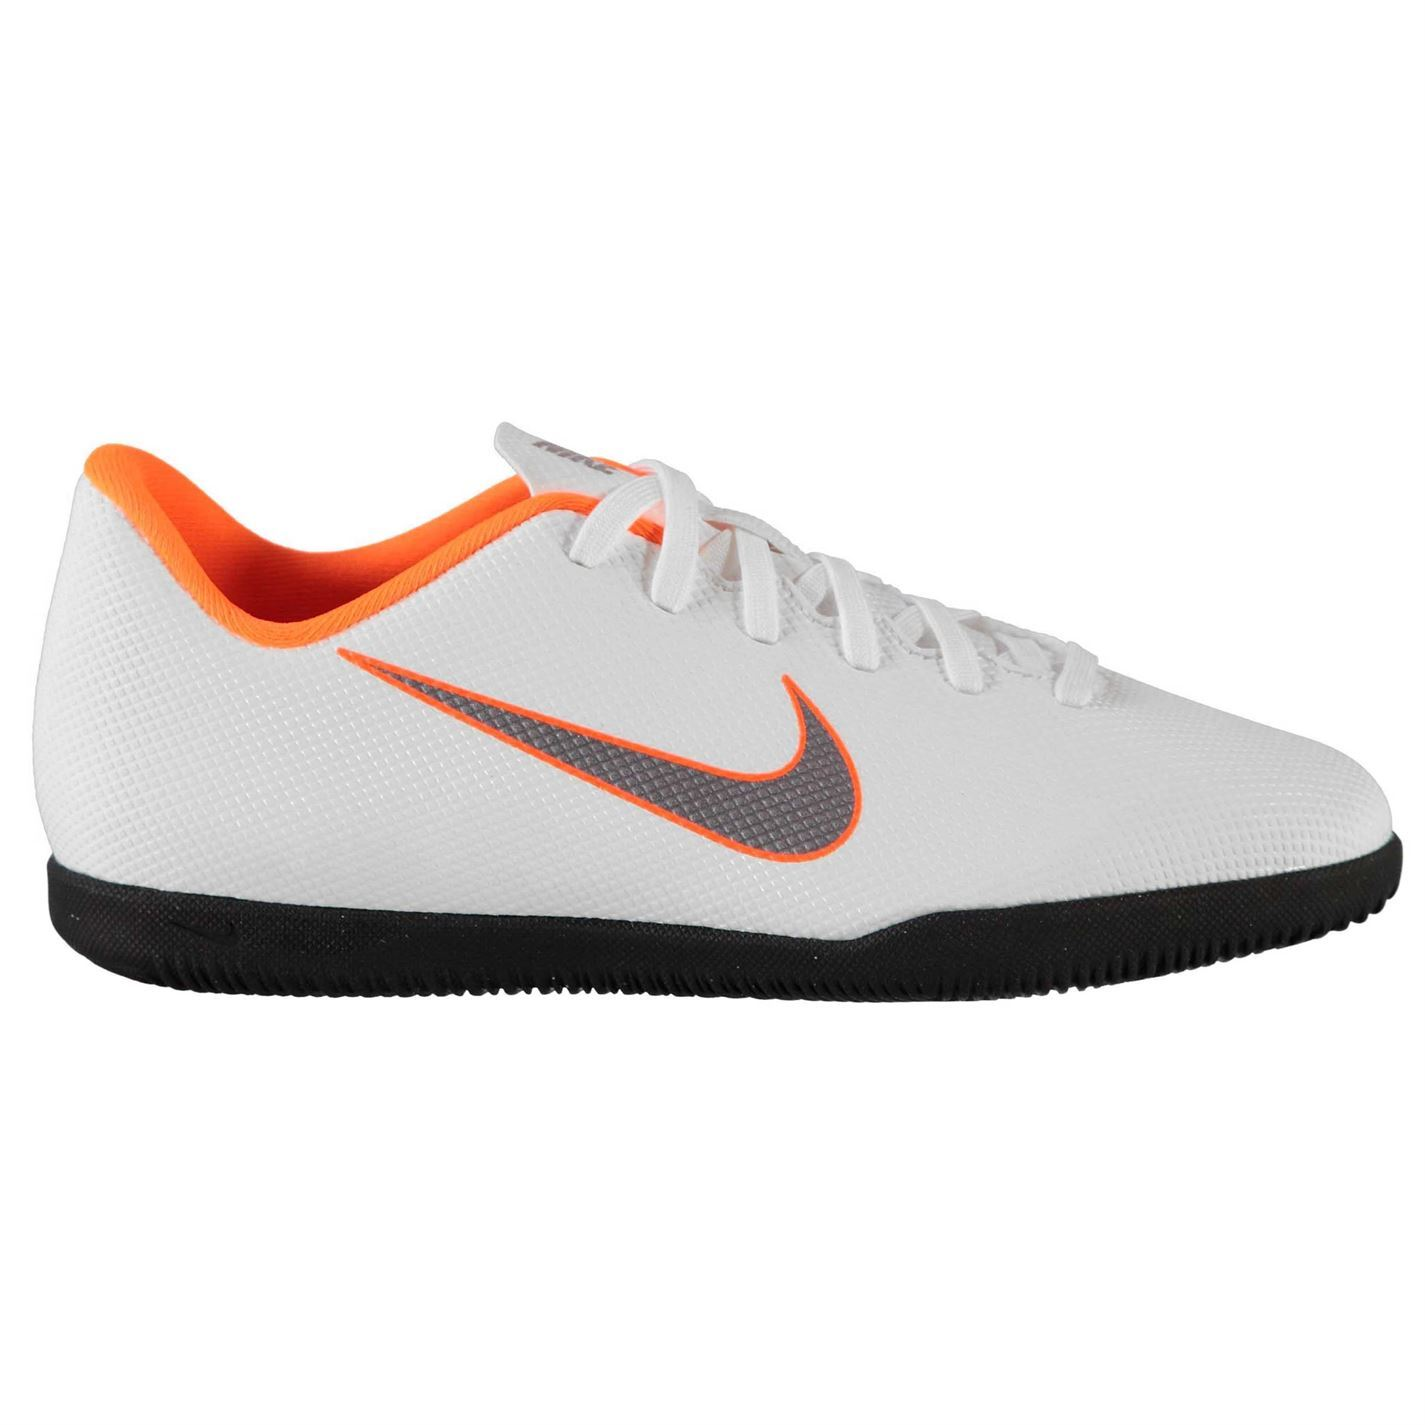 hot sales e835c fa1cd Soccer Club Indoor Vapor Juniors Mercurial Football Trainers Nike qE0tpwq